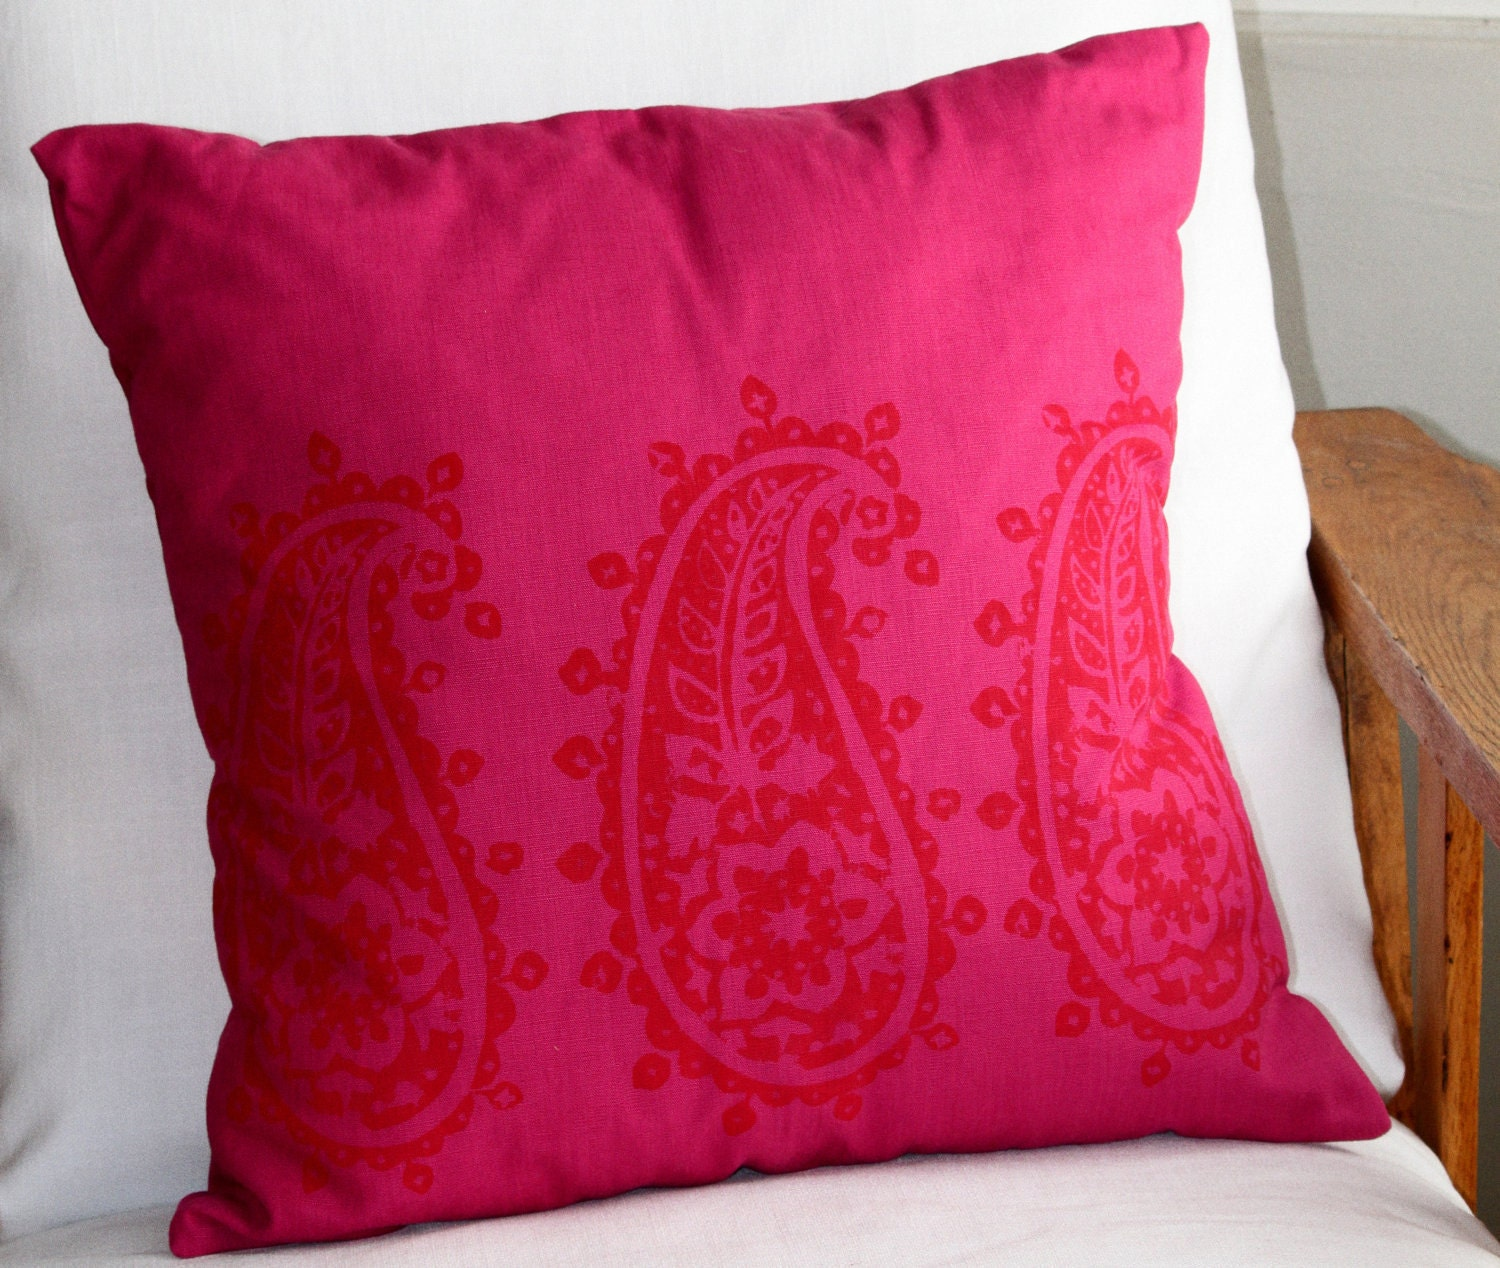 Paisley - Red on Pink - 45x45cm